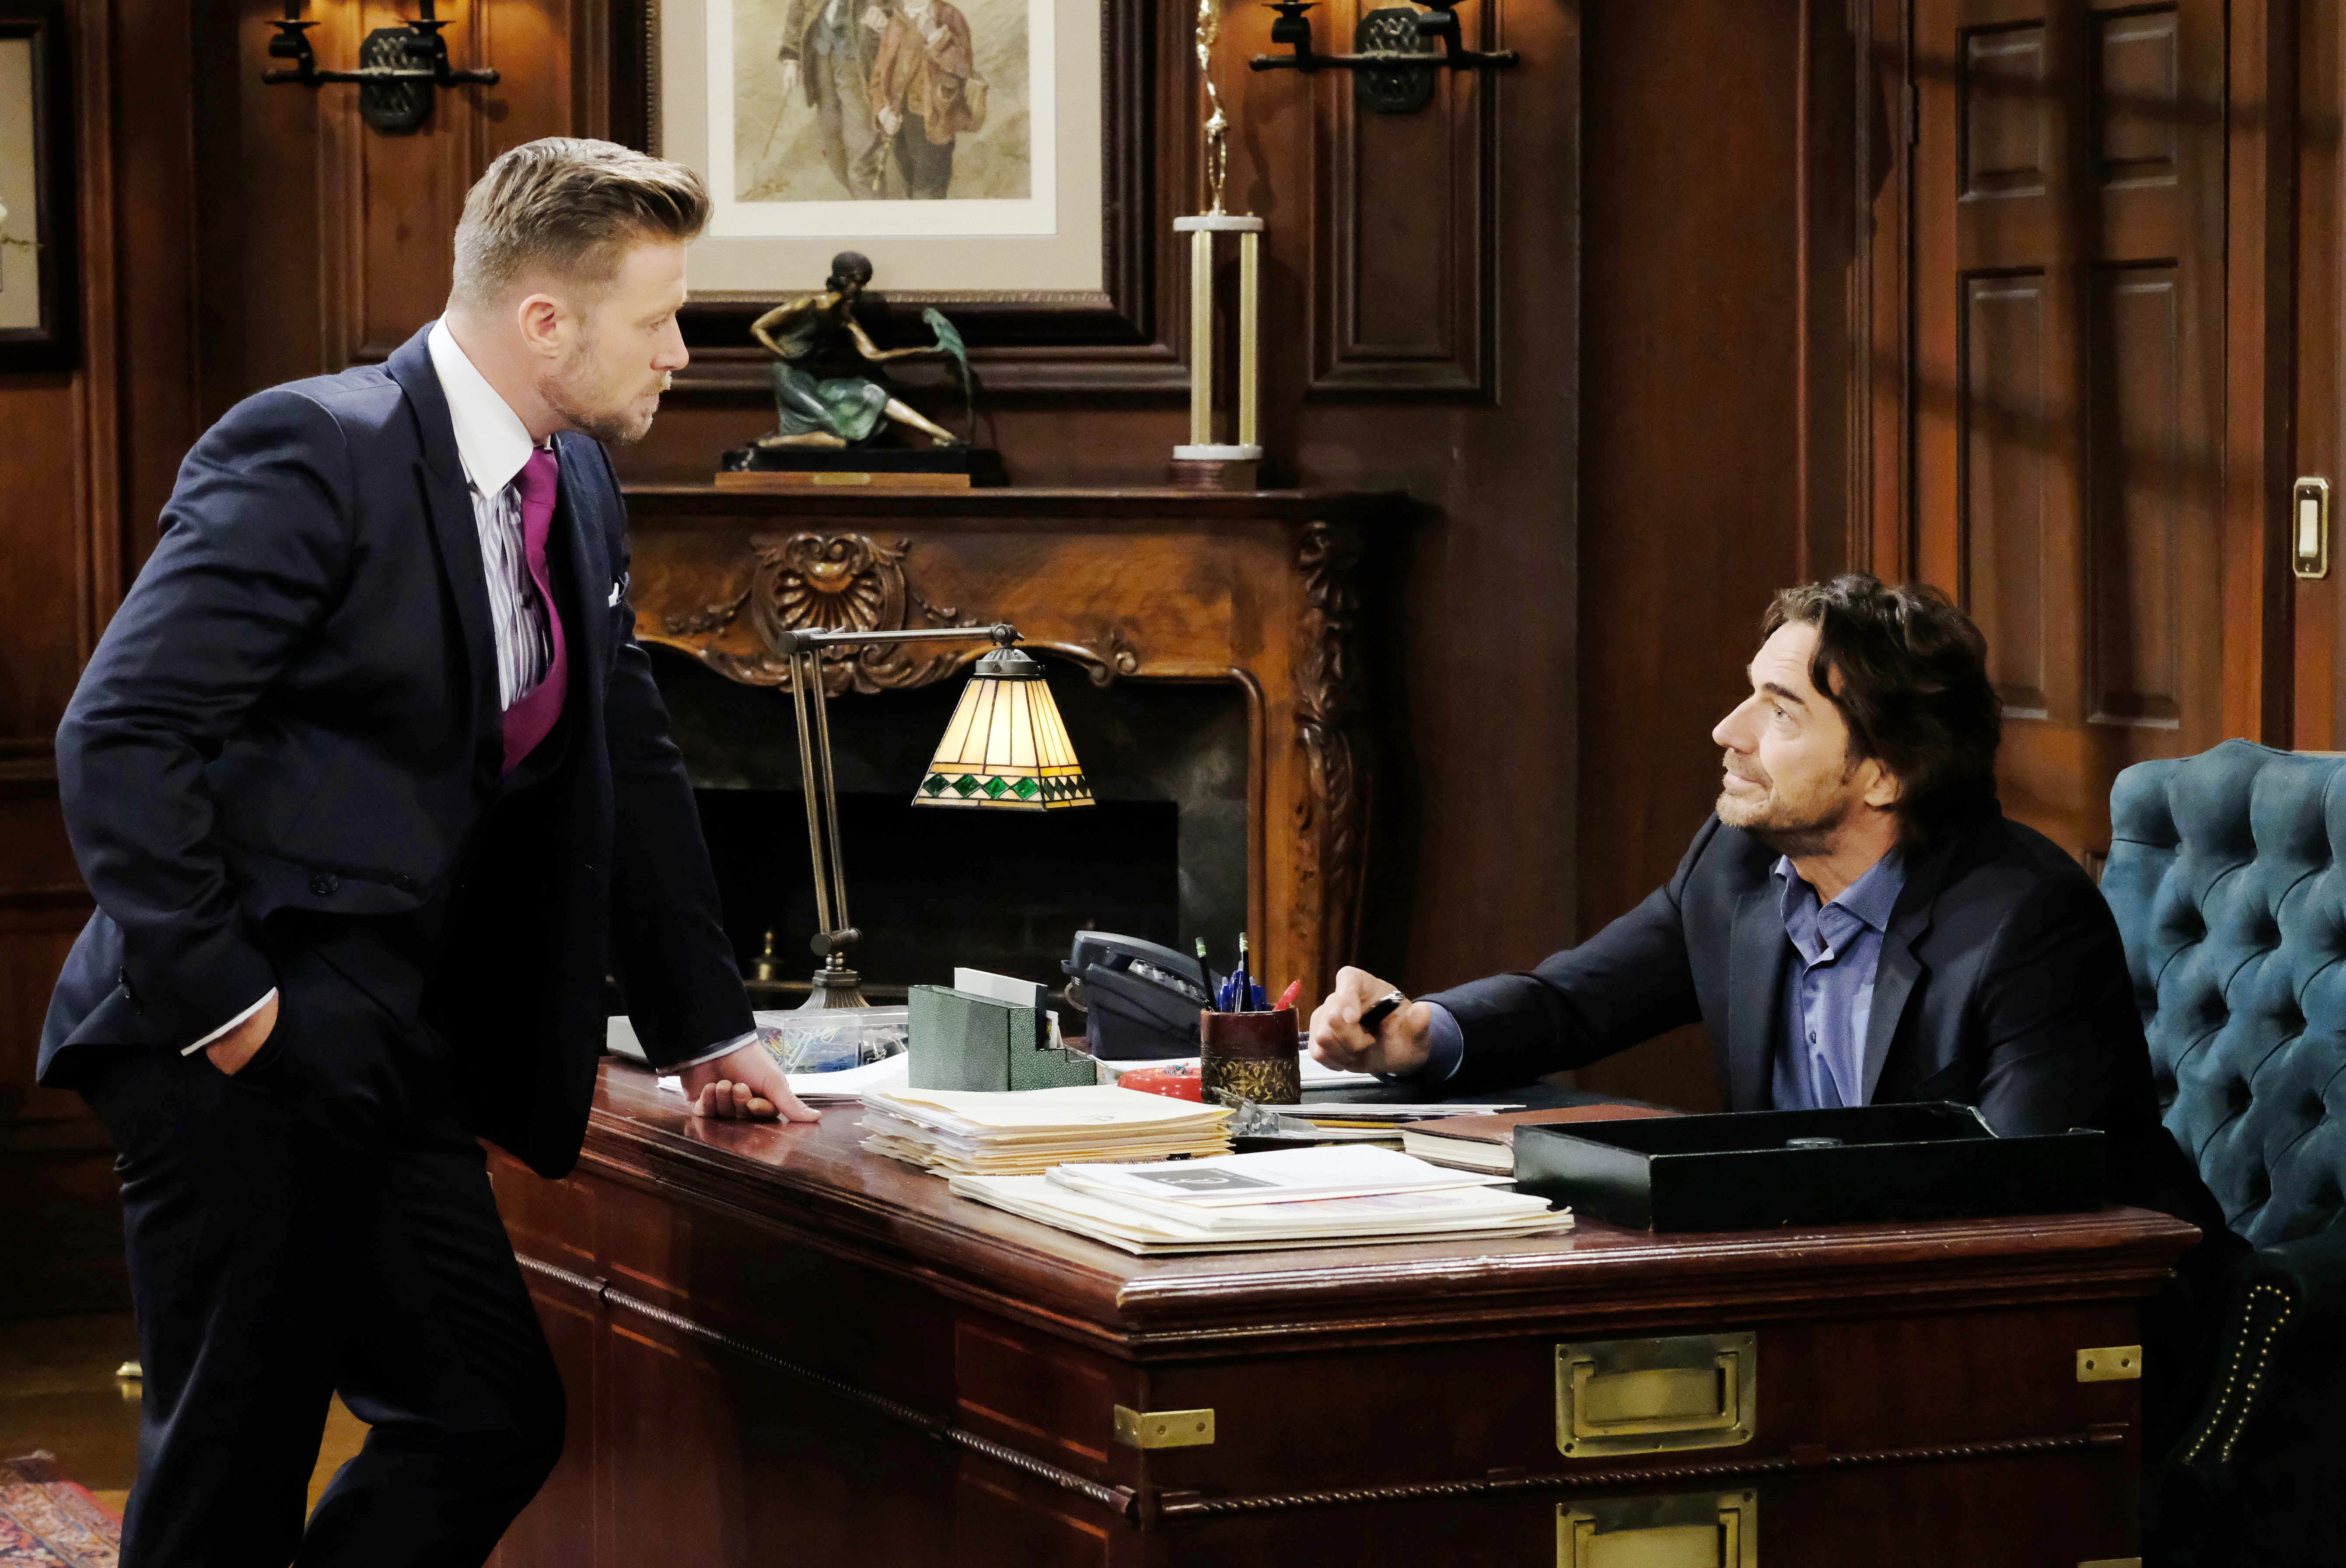 Rick forces Ridge to rethink his plan when he questions its accuracy.